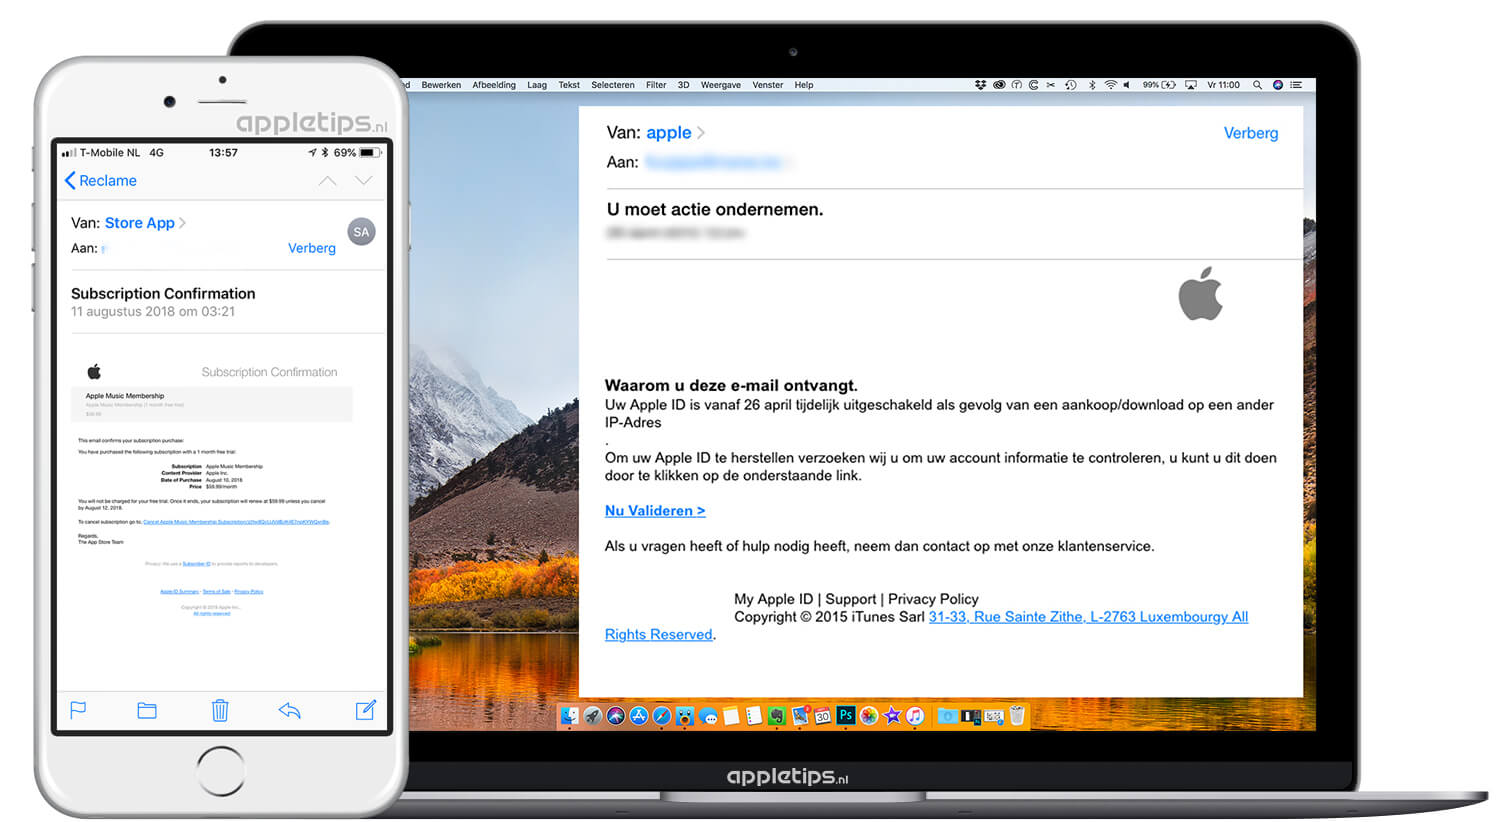 Herkennen van Apple phishing mail - appletips